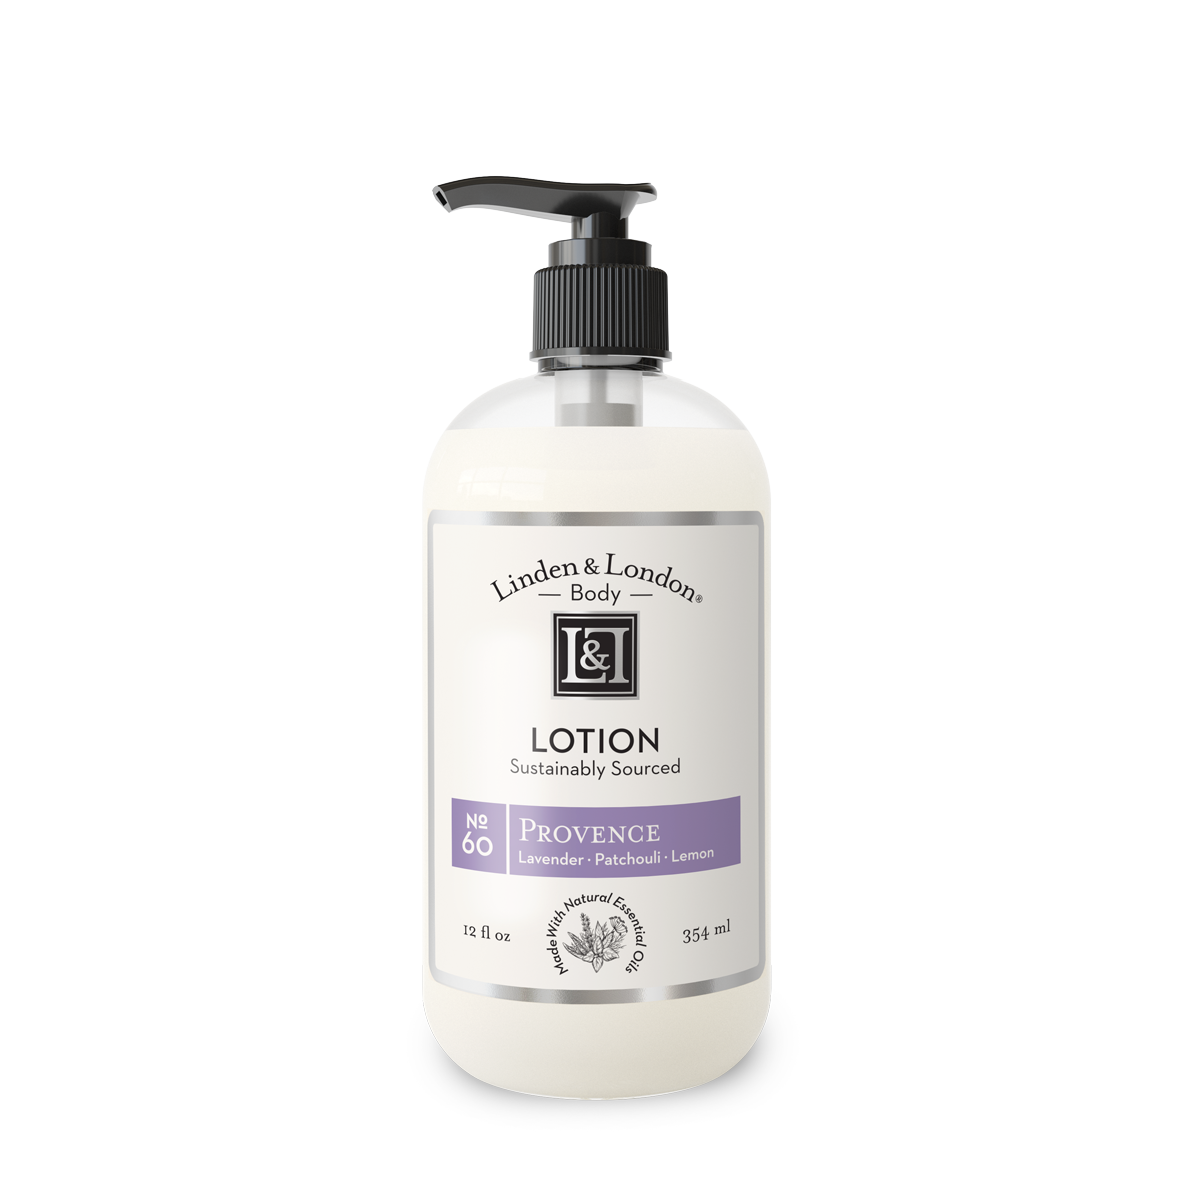 bottle of Provence Lotion